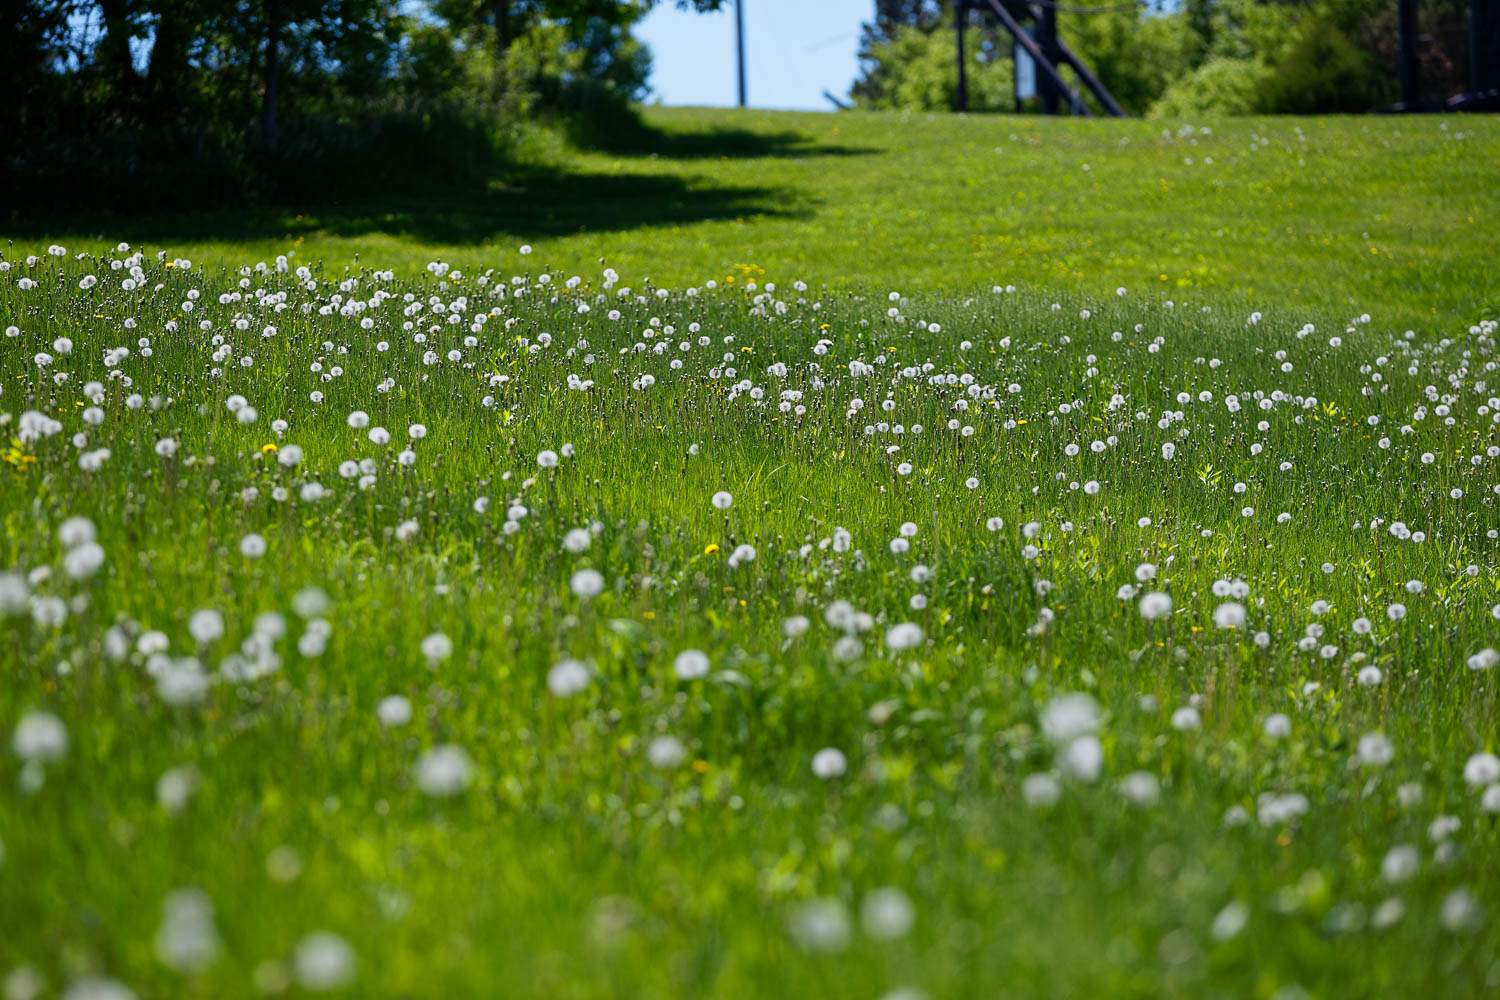 — acres of land covered by dandelion—